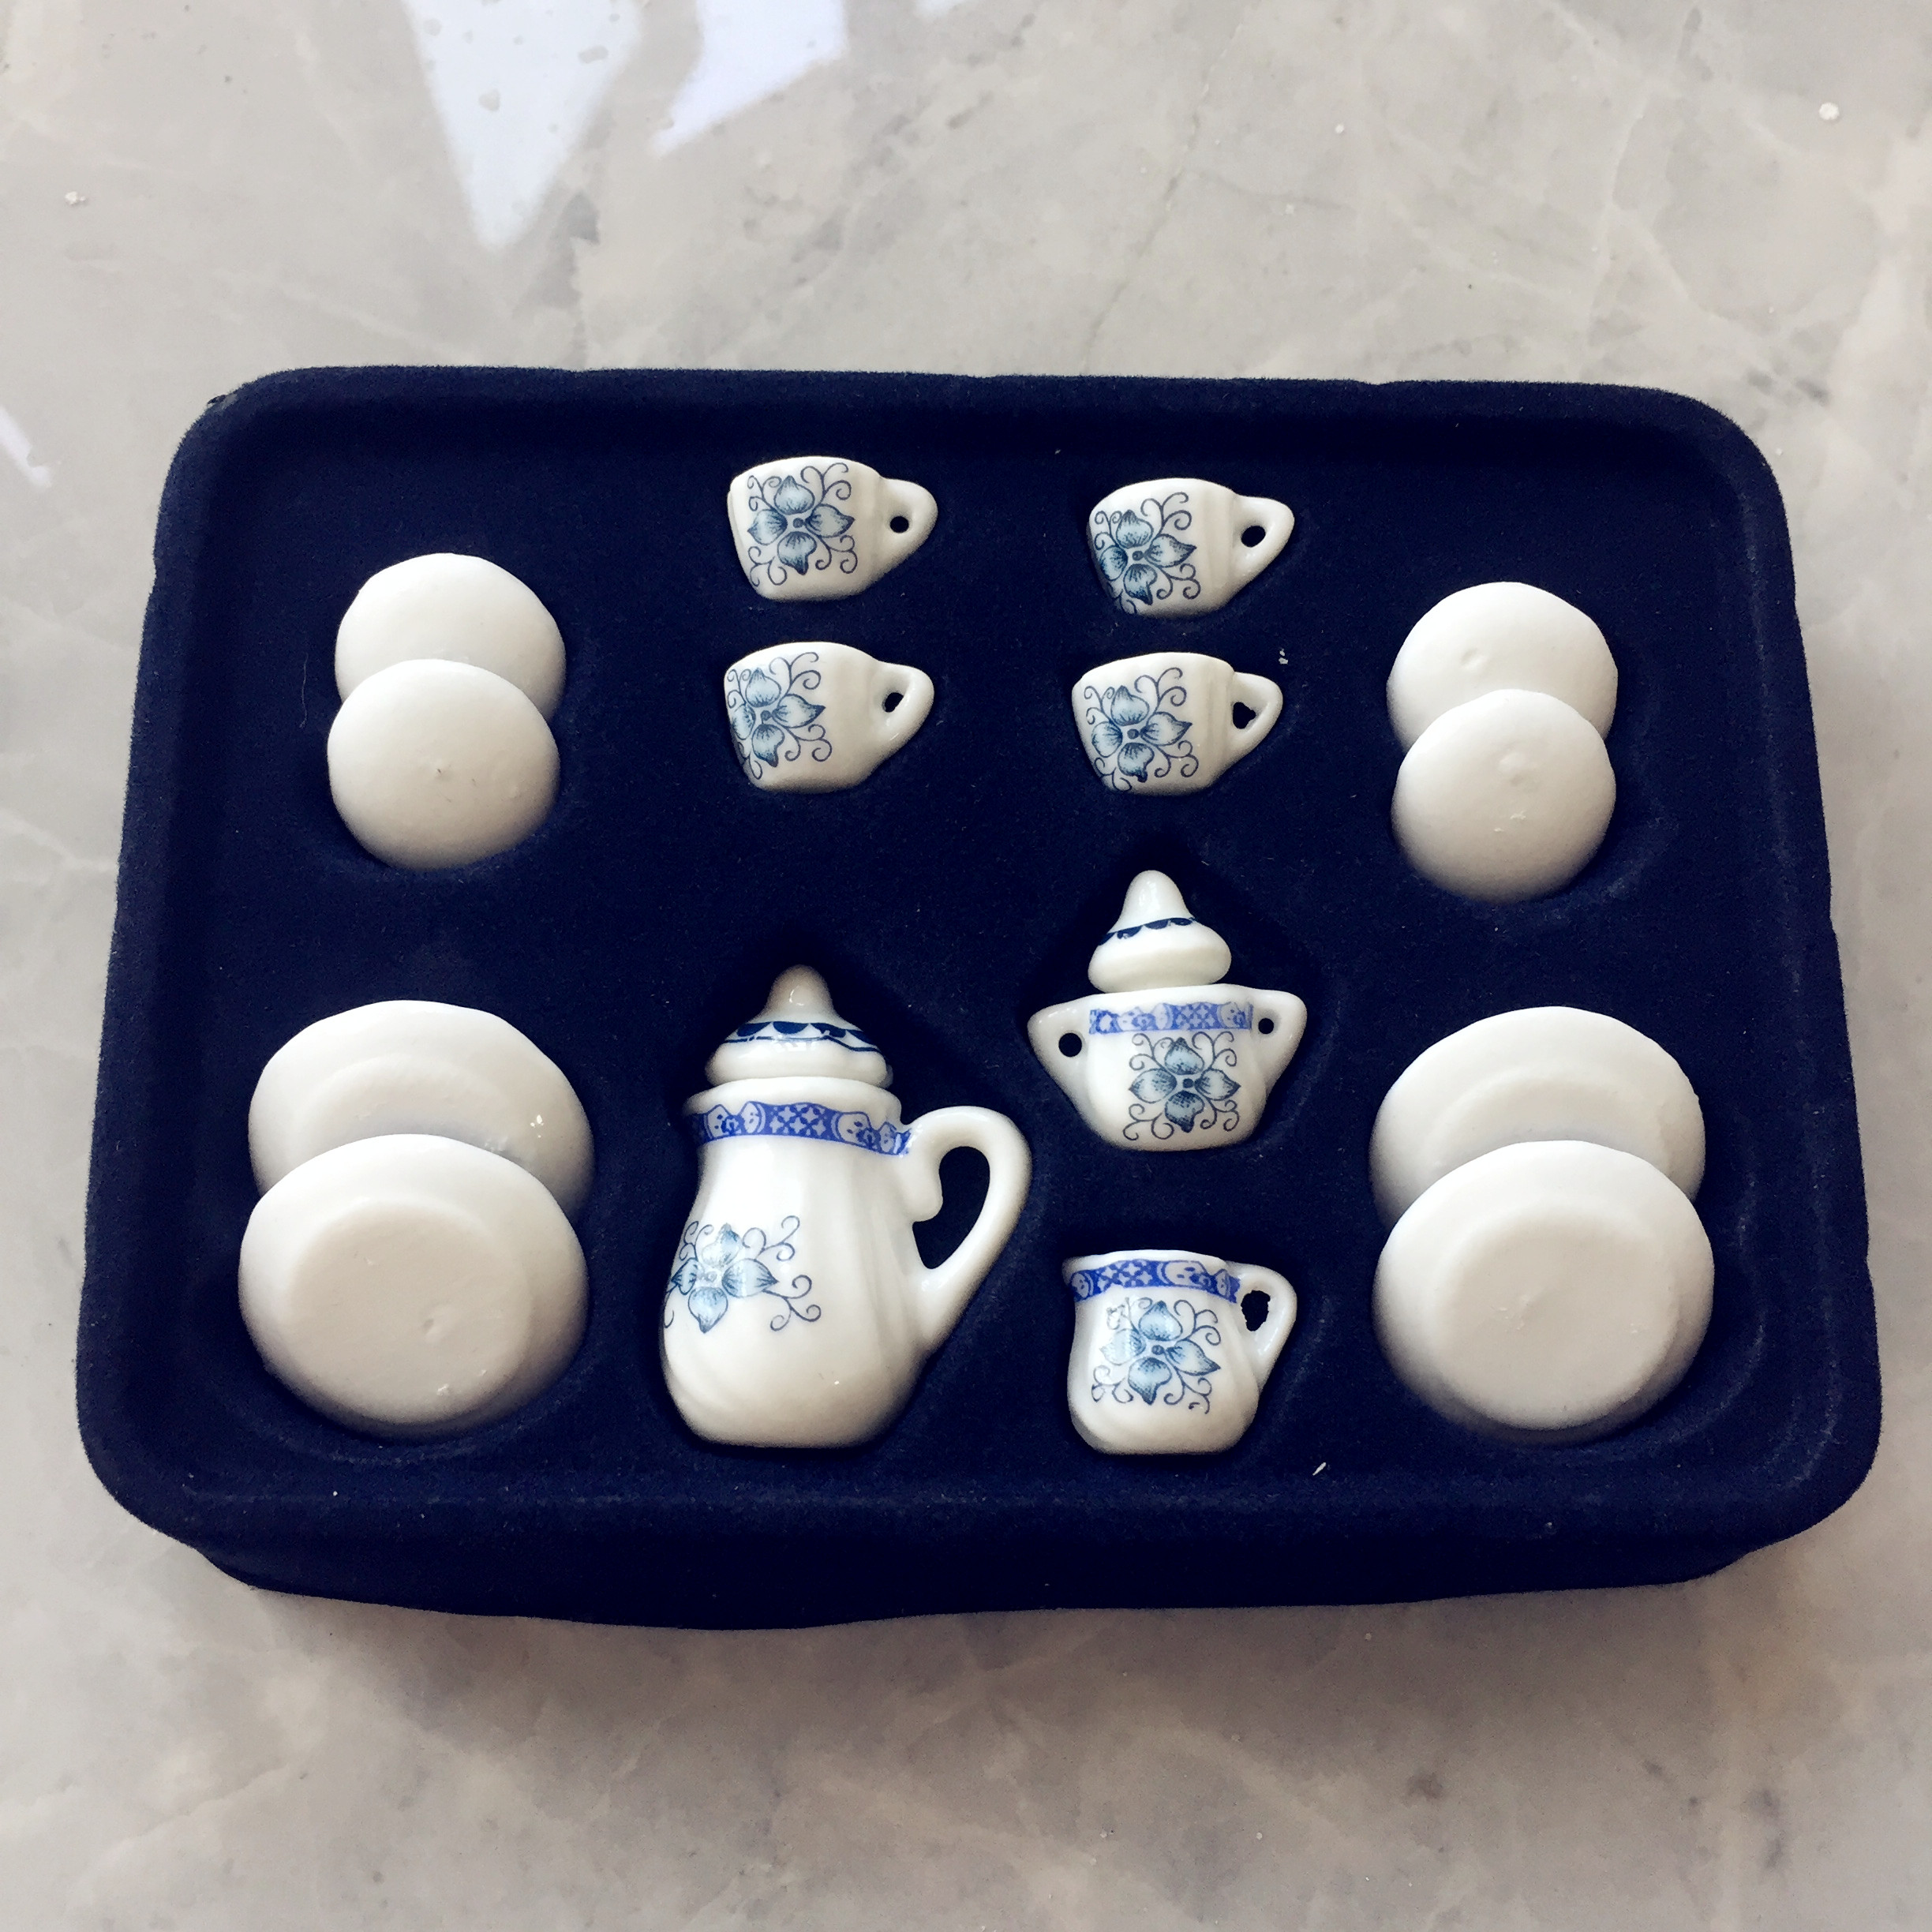 China Ceramic Dollhouse Miniature Blue and White Porcelain Dining Ware Tea Set Dish Cup Plate Doll House Kitchen Accessories